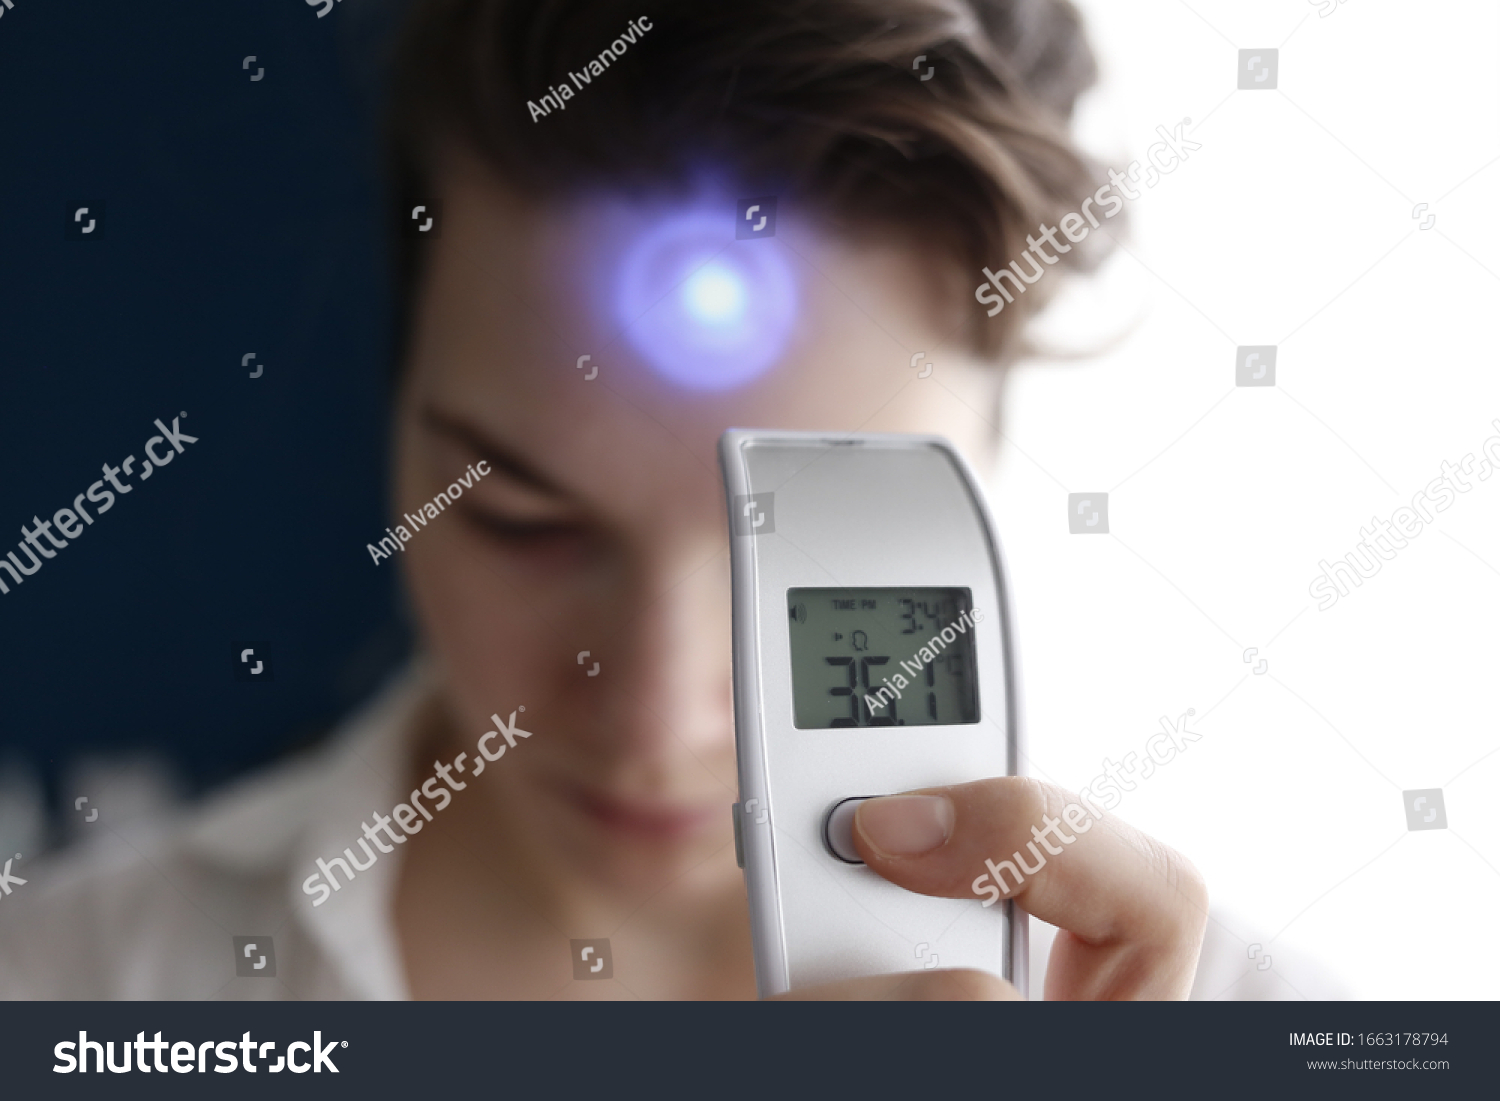 A female person being measured body temperature with a contactless thermometer #1663178794